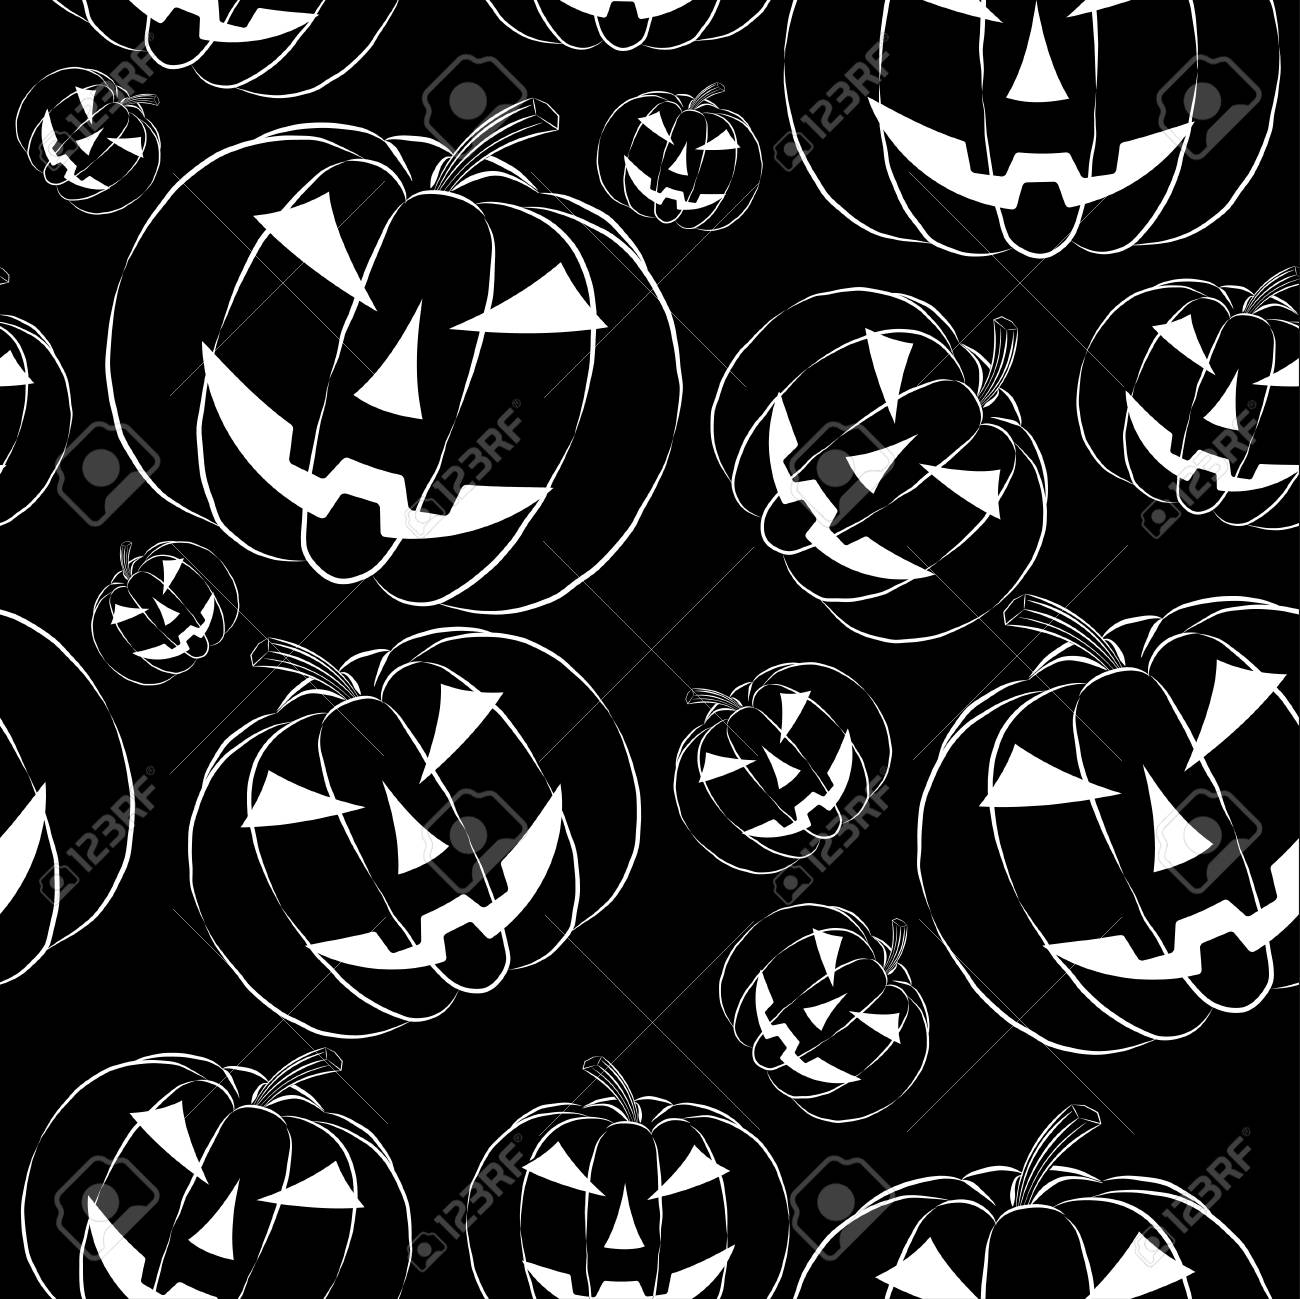 Pumpkin Lantern In Outline Style Seamless Wallpaper On Black Royalty Free Cliparts Vectors And Stock Illustration Image 67579609